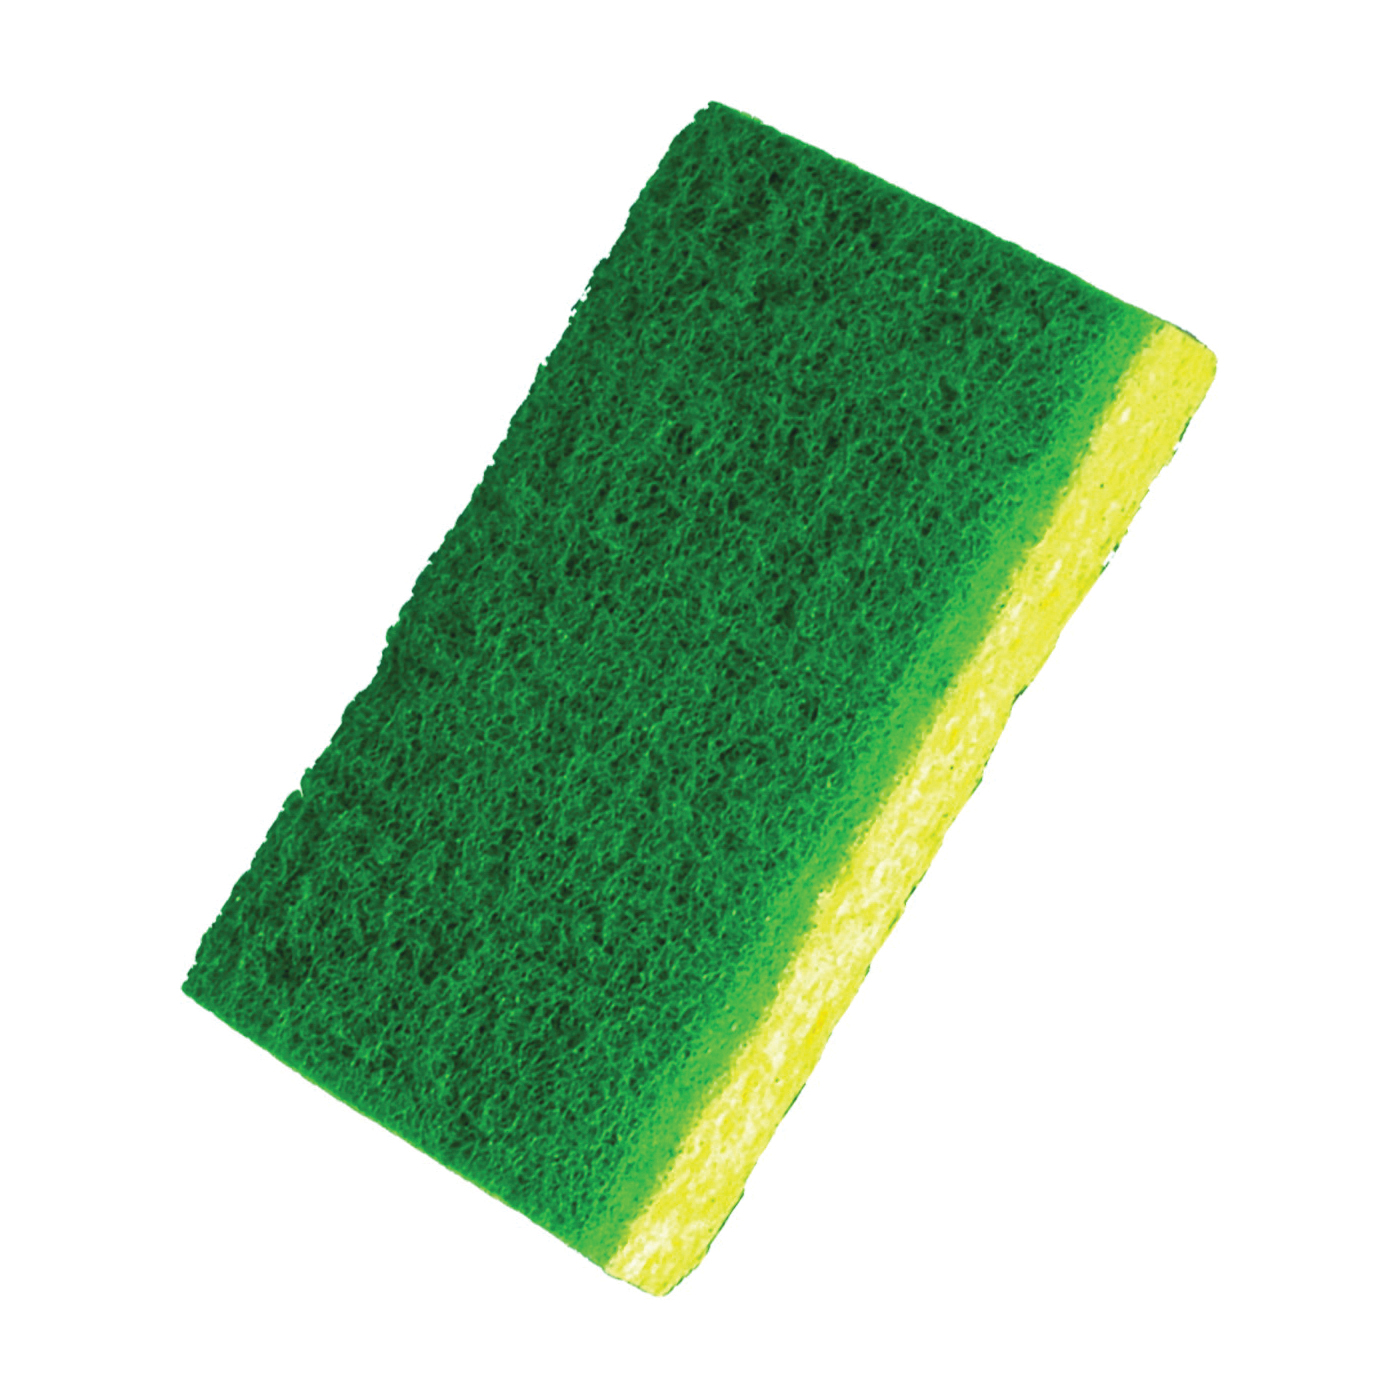 Picture of BIRDWELL 369-48 Scouring Pad, 4-1/2 in L, 2-7/8 in W, Green/Yellow